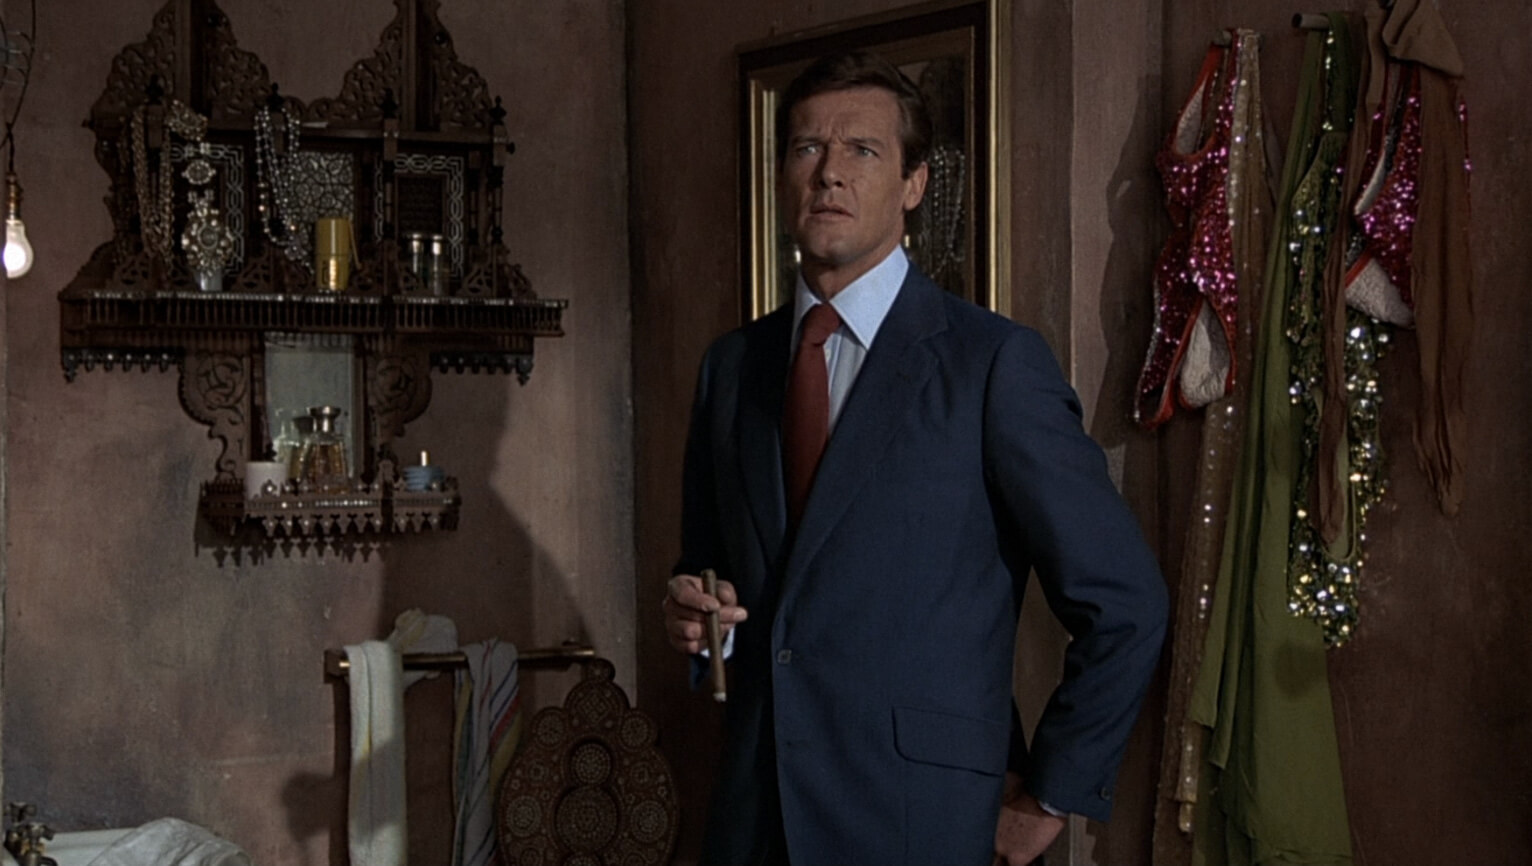 mohair suit roger moore as james bond in marine blue mohair blend suit lahkqxf